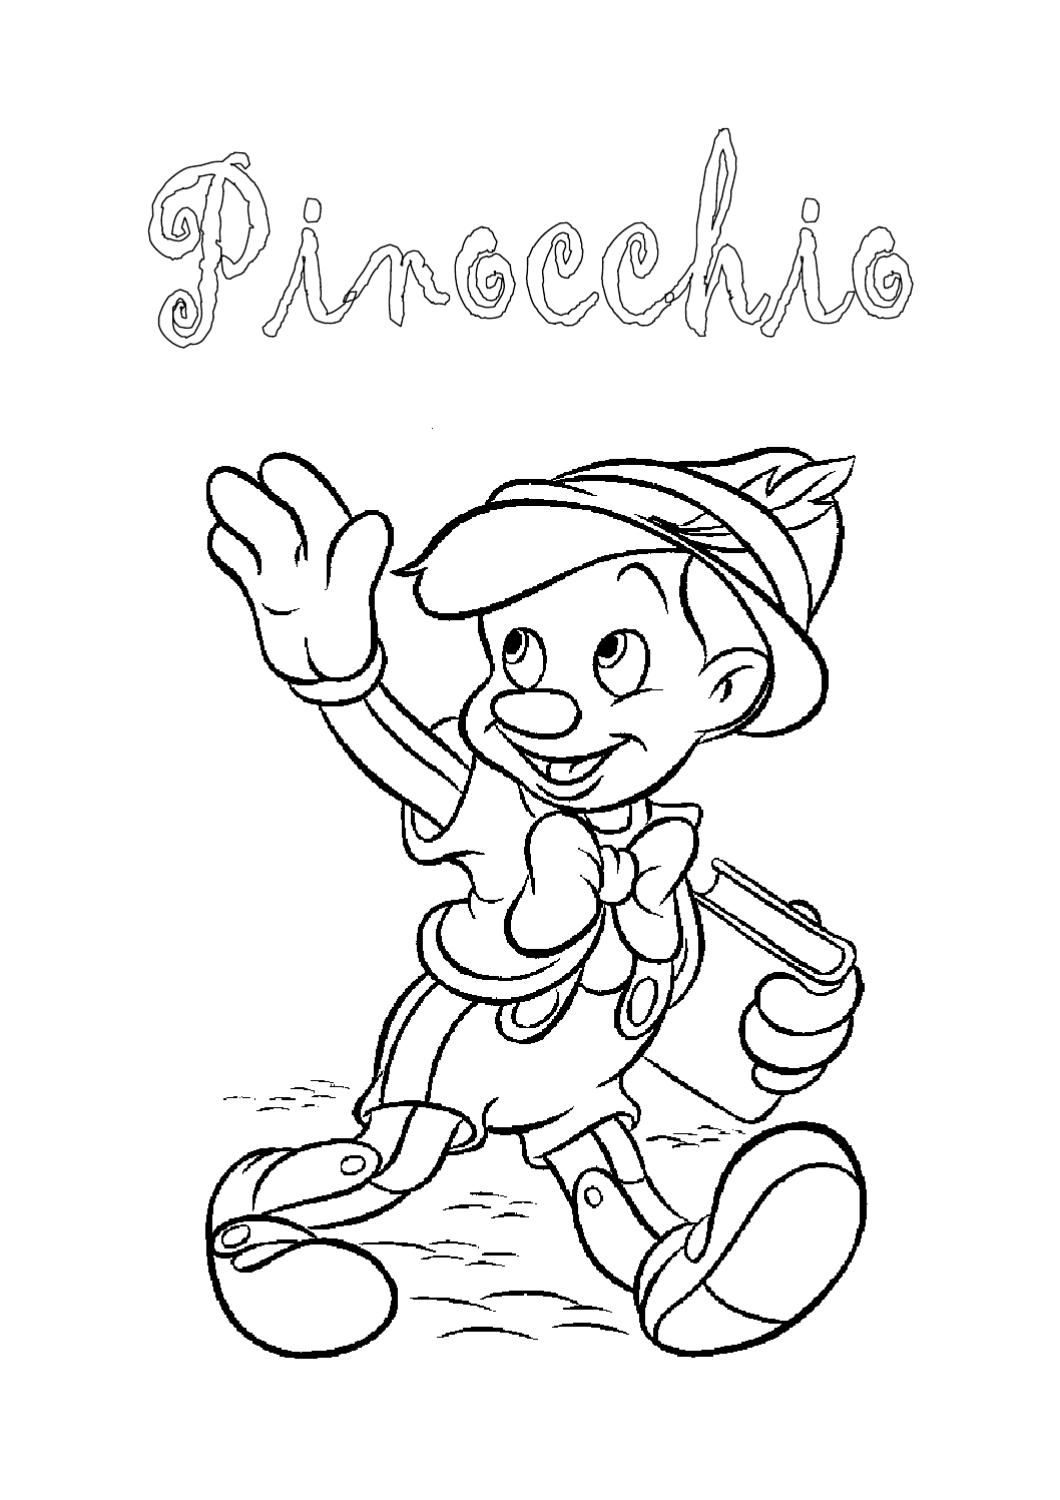 Pinocchio italiano pinocchio disney coloring pages e for Grammatica inglese di base da stampare